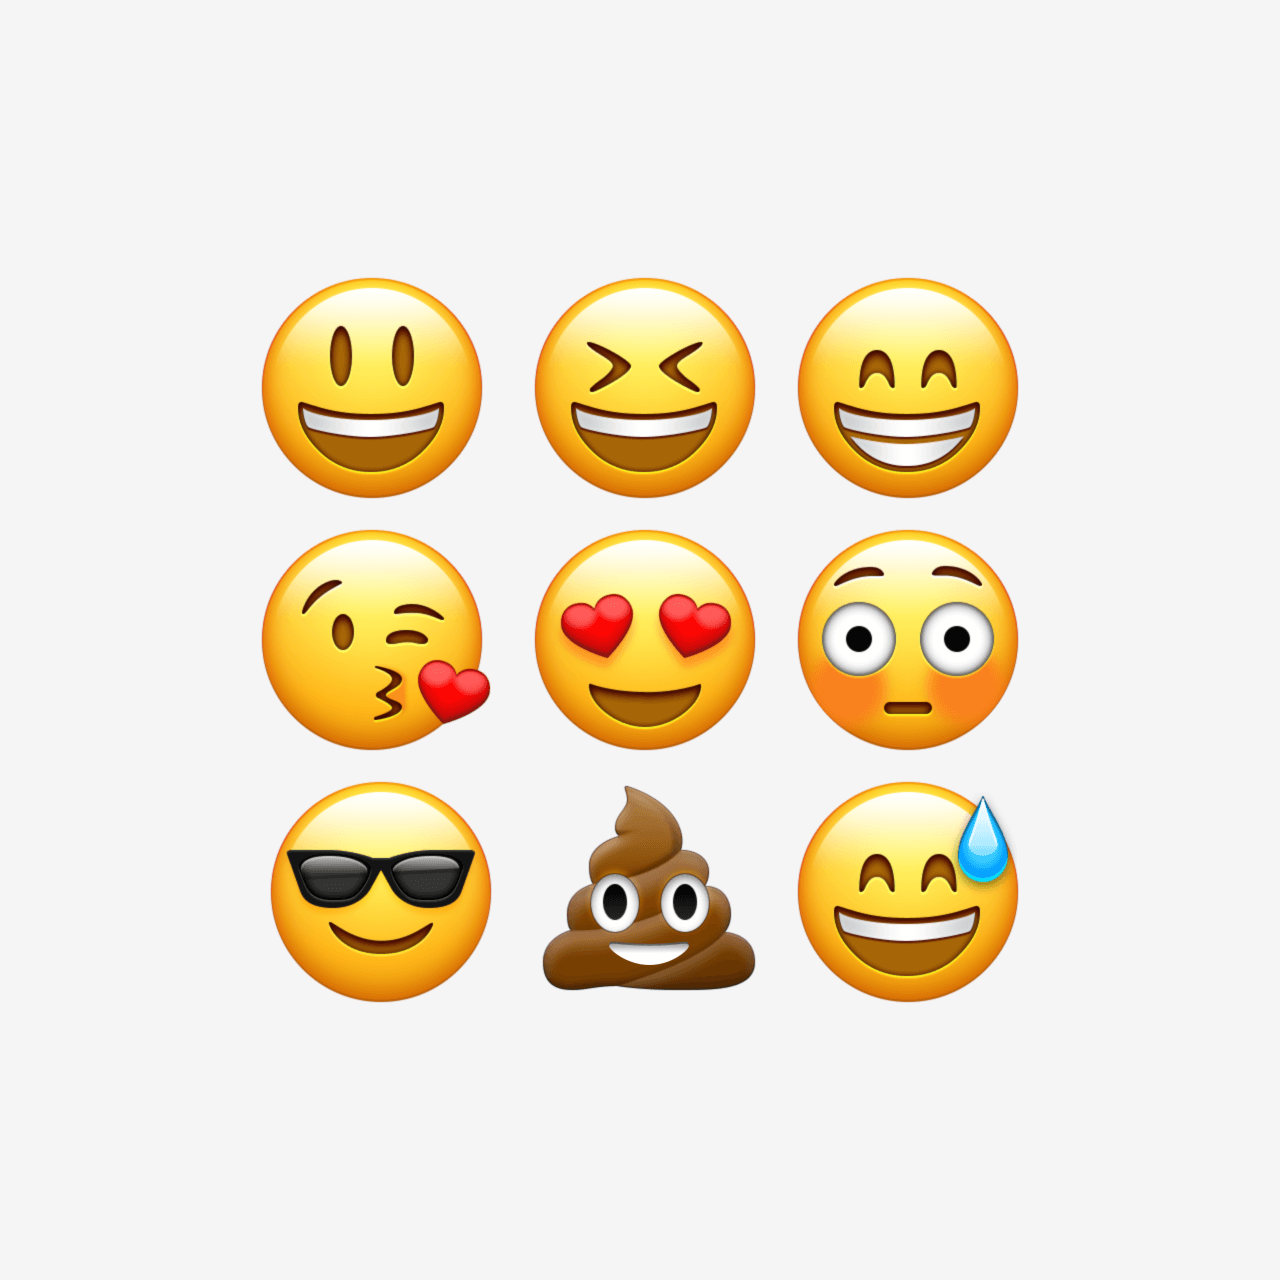 mon Emojis recreated in vector Easily edit & scale every aspect